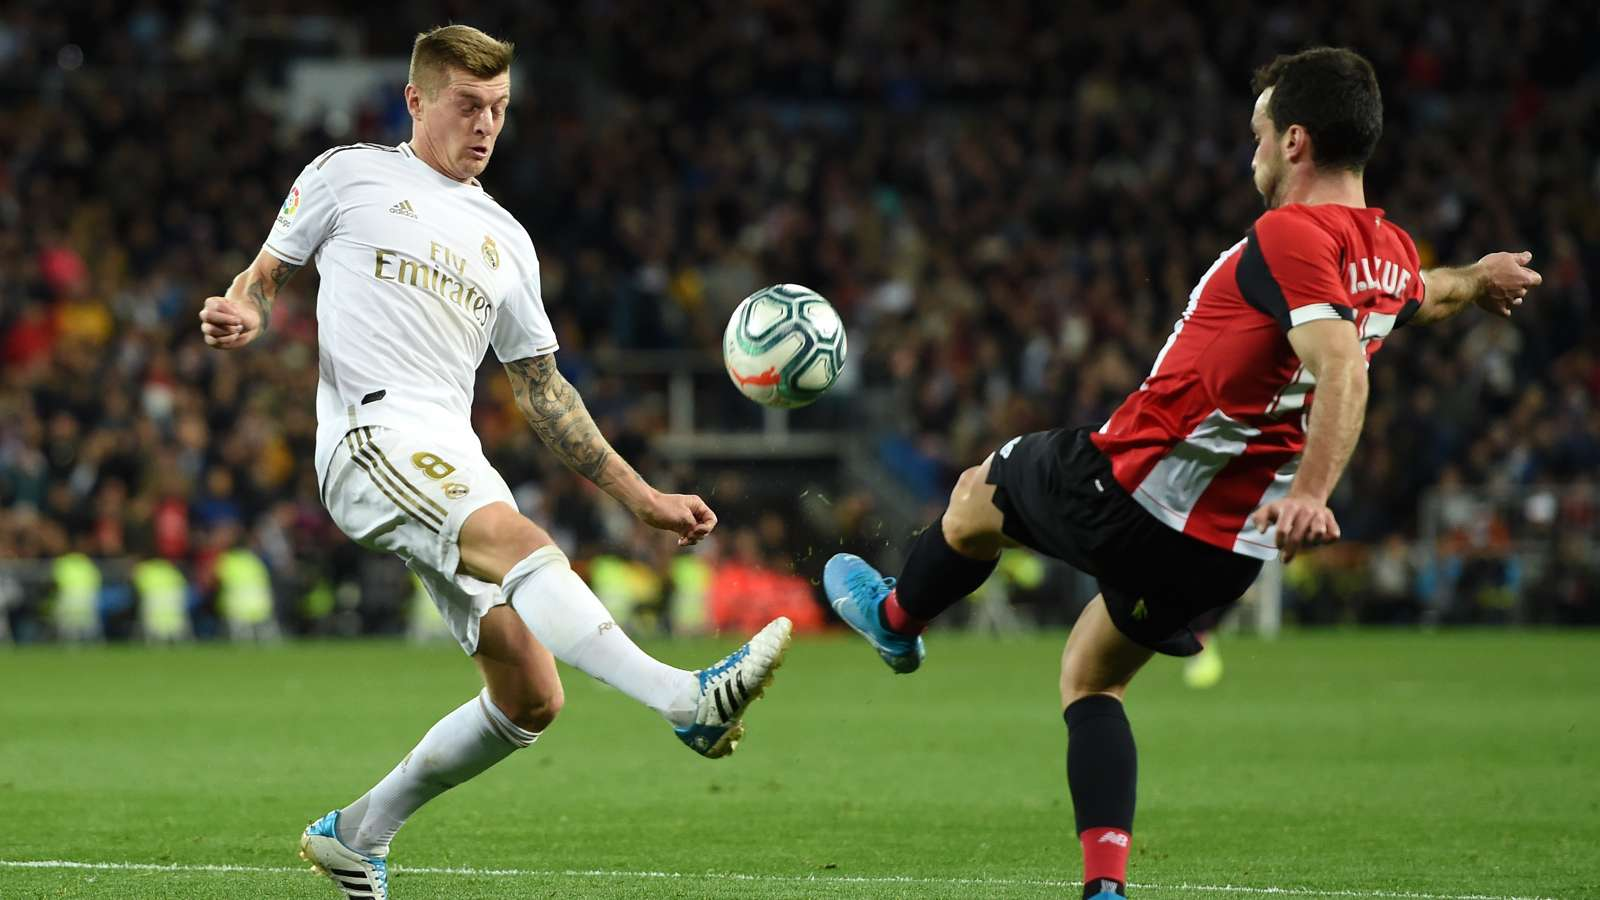 Real Madrid and Athletic Bilbao